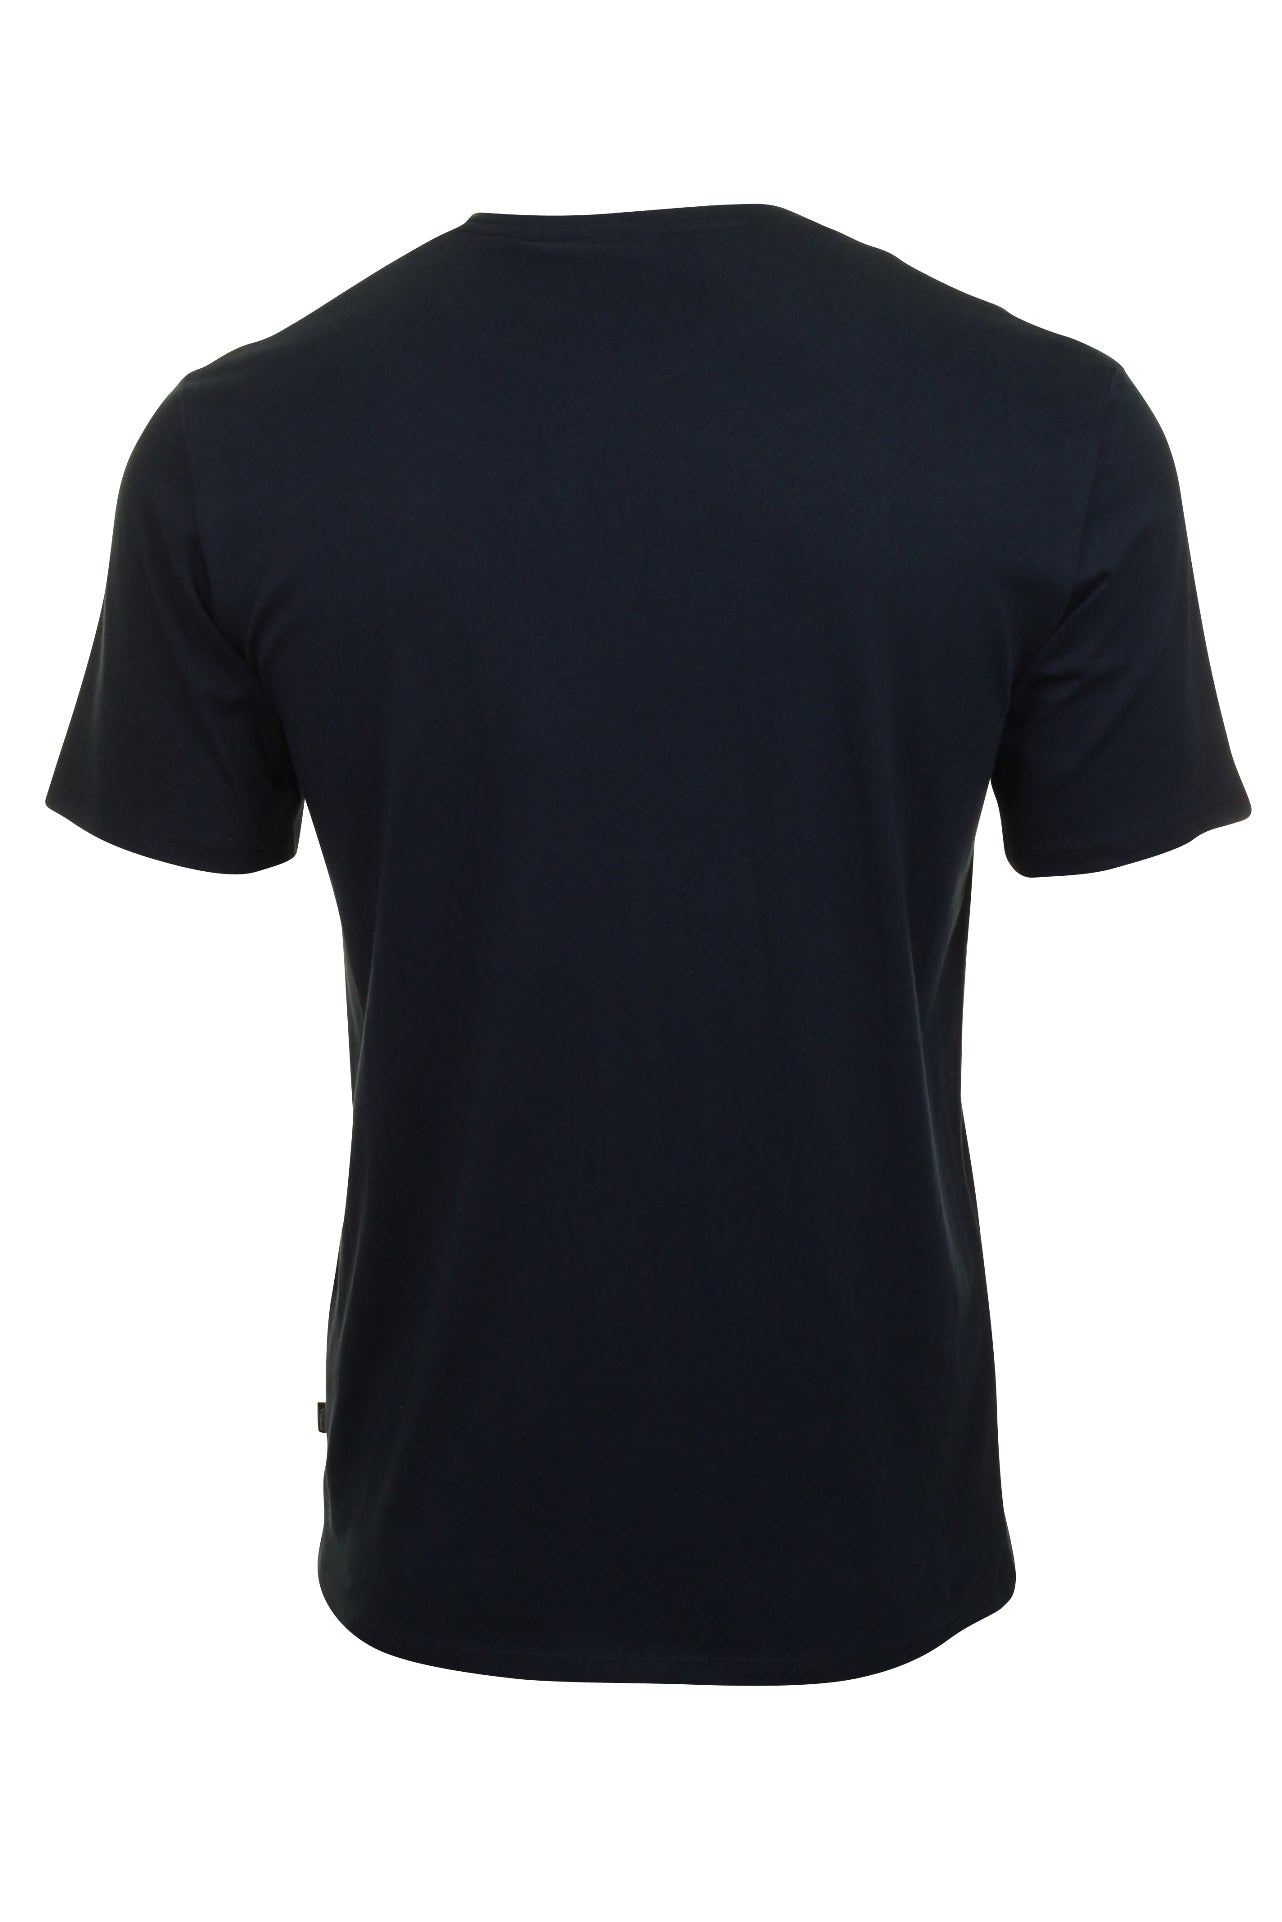 O'Neill Mens 'Triple Logo' Short Sleeved T-Shirt-2